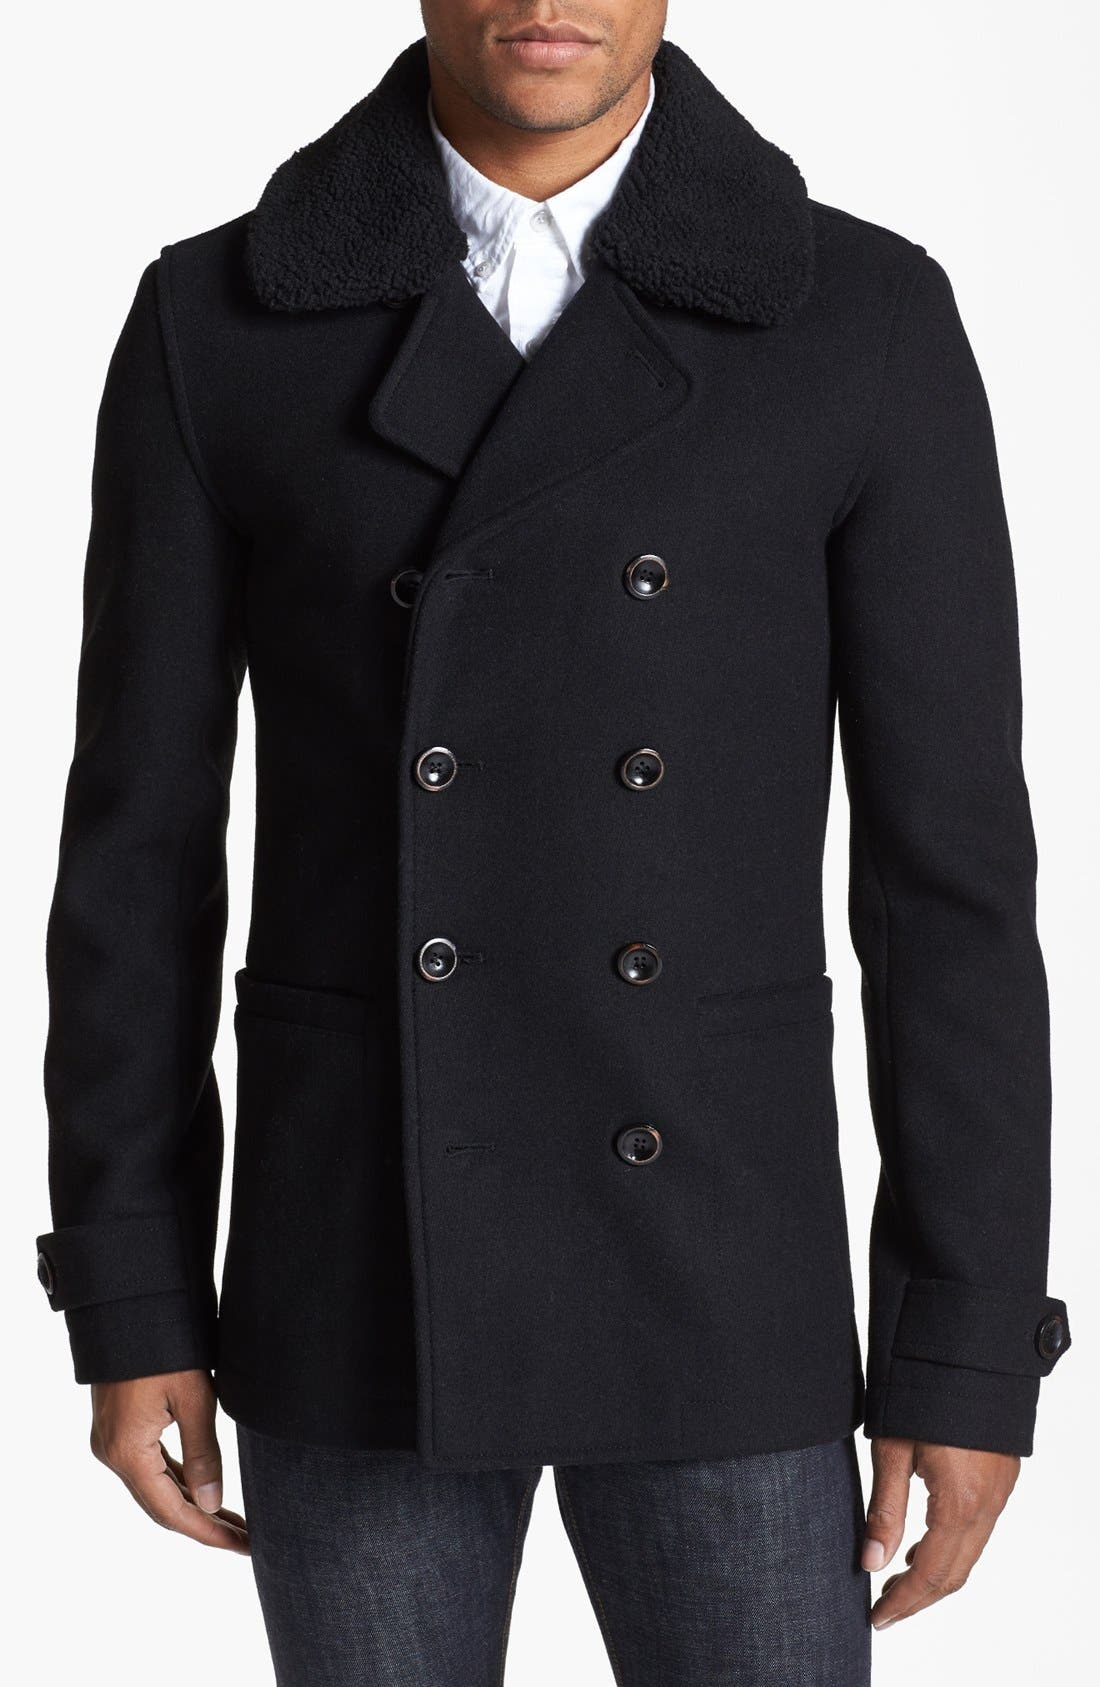 Skinny Fit Double Breasted Peacoat,                         Main,                         color, Black